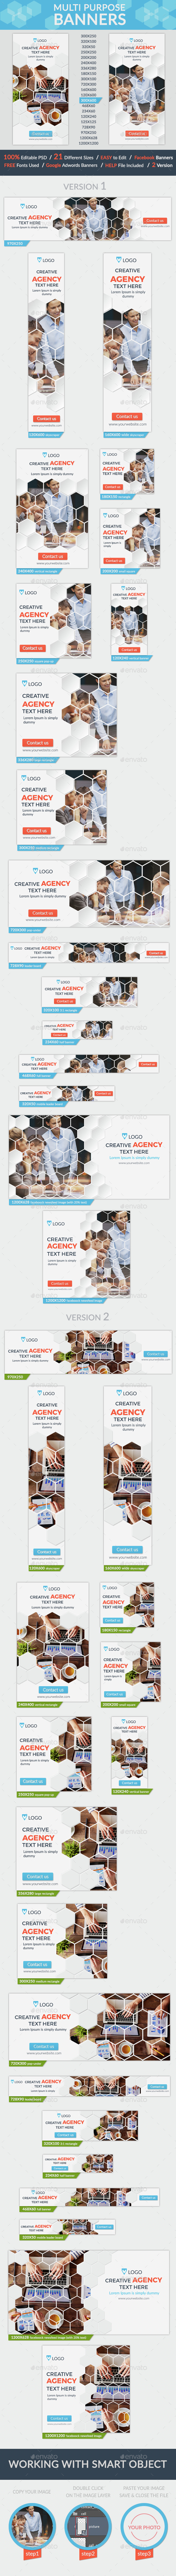 Multi Purpose Banners + 2facebook banners - Banners & Ads Web Elements